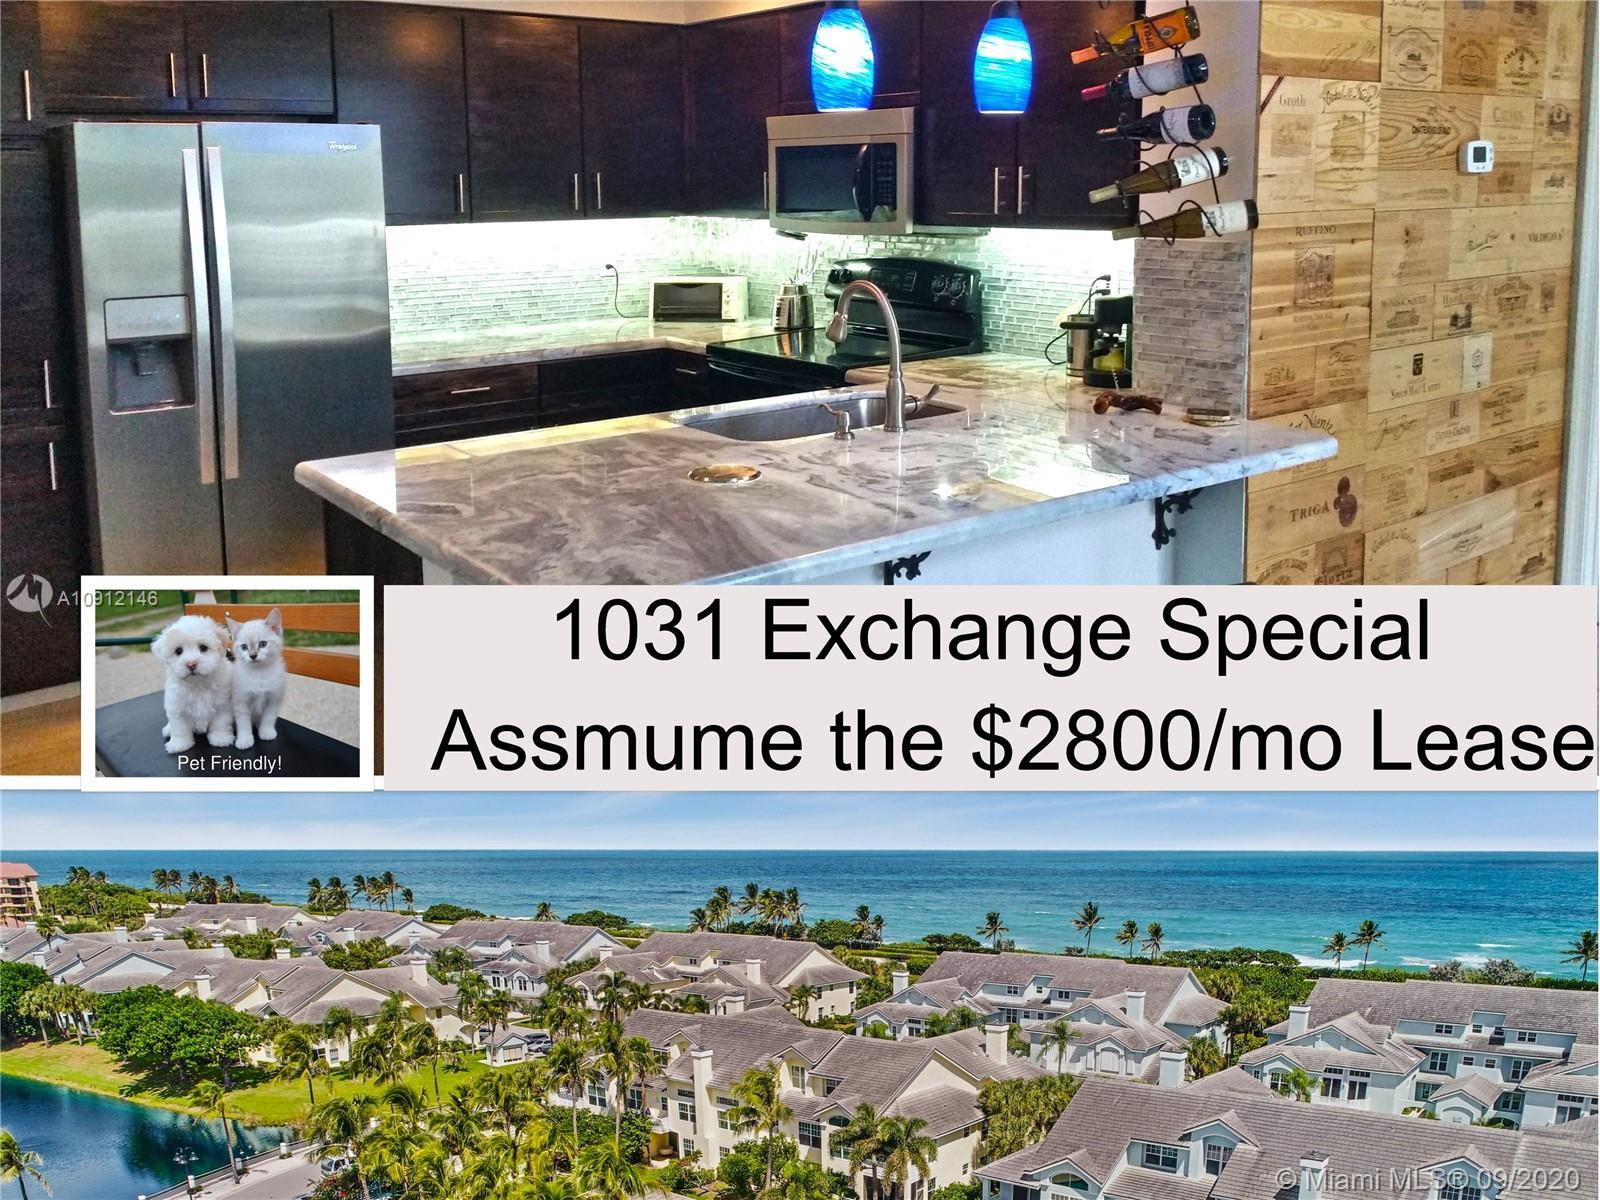 1031 EXCHANGE SPECIAL $2800/mo ANN LEASE BEGINS OCT 1.  Sea Colony does not allow leases in the firs